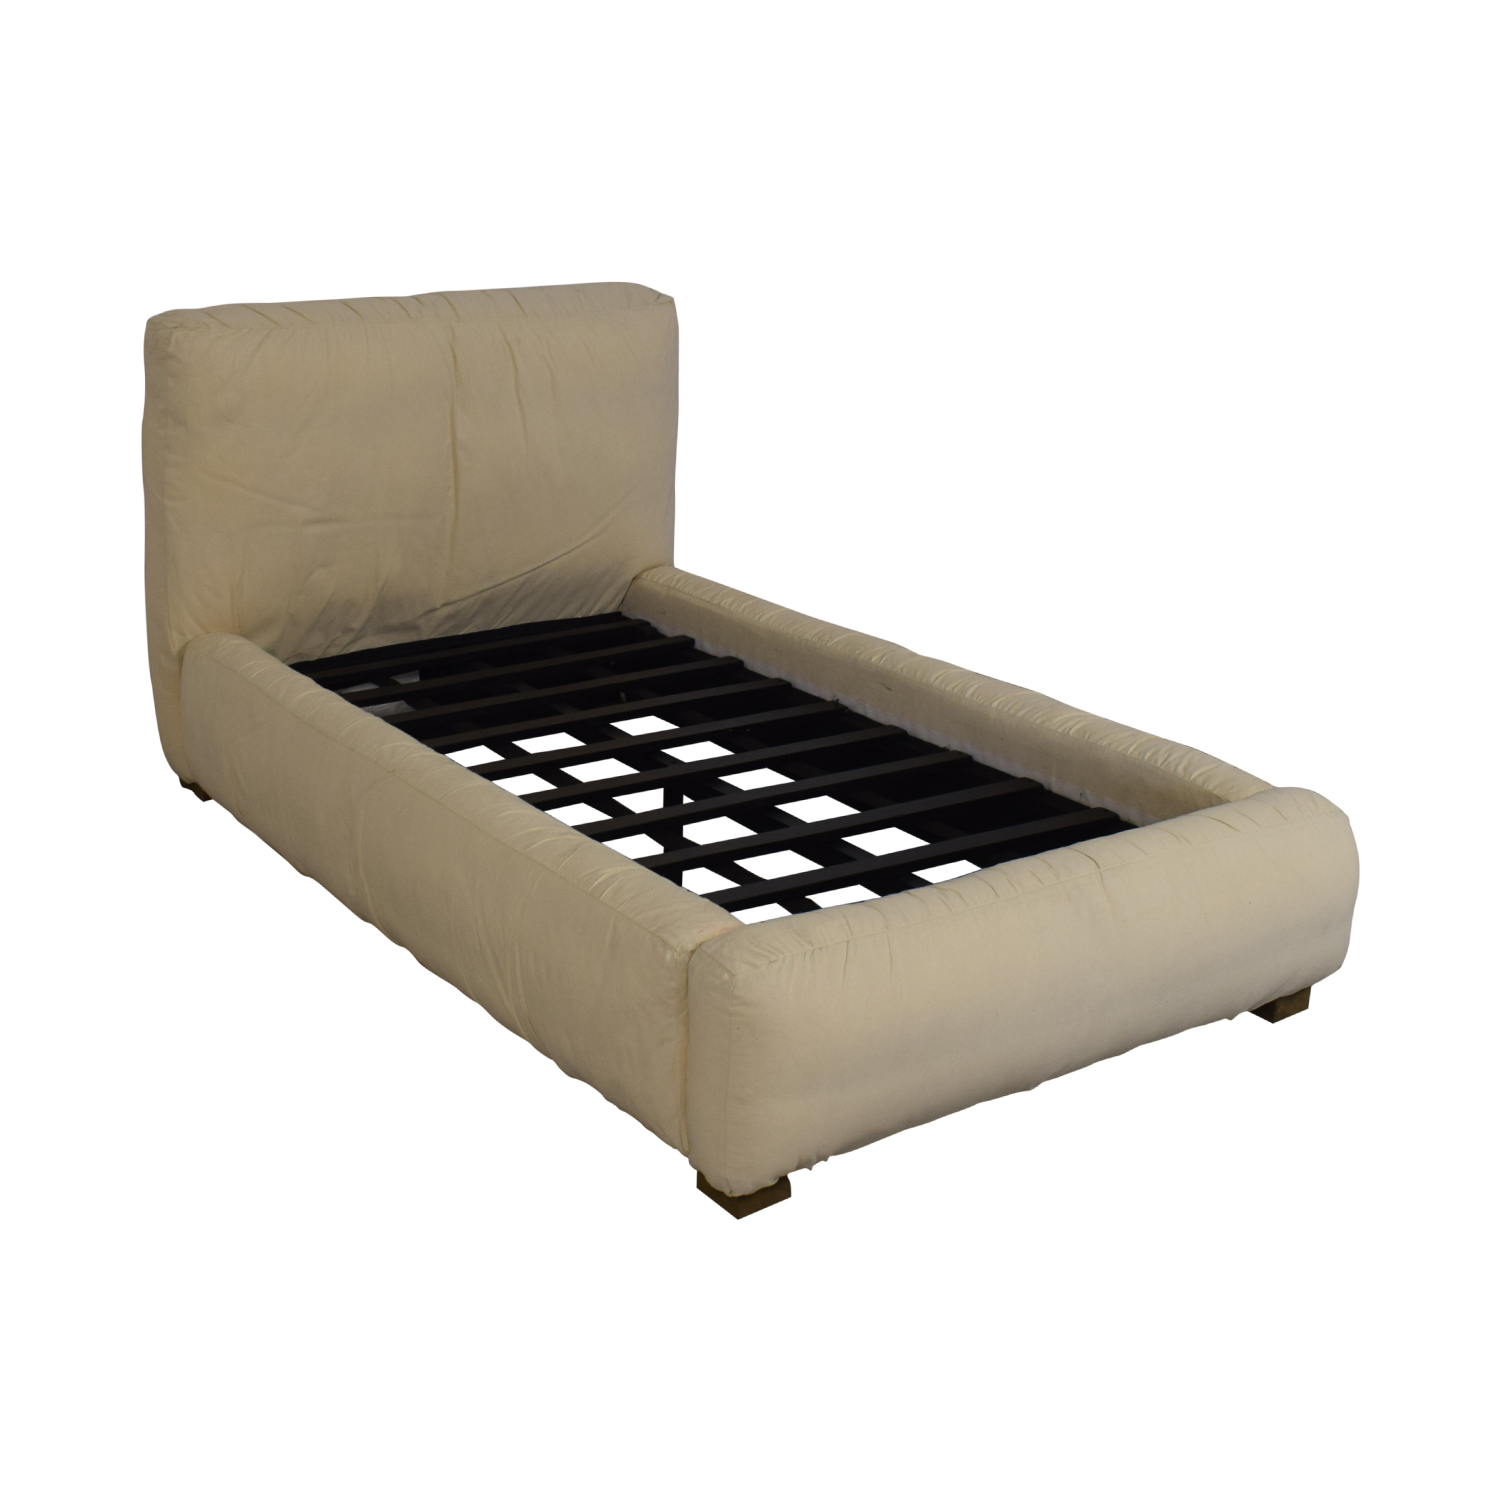 buy Restoration Hardware Restoration Hardware Sona Upholstered Platform Twin Bed online